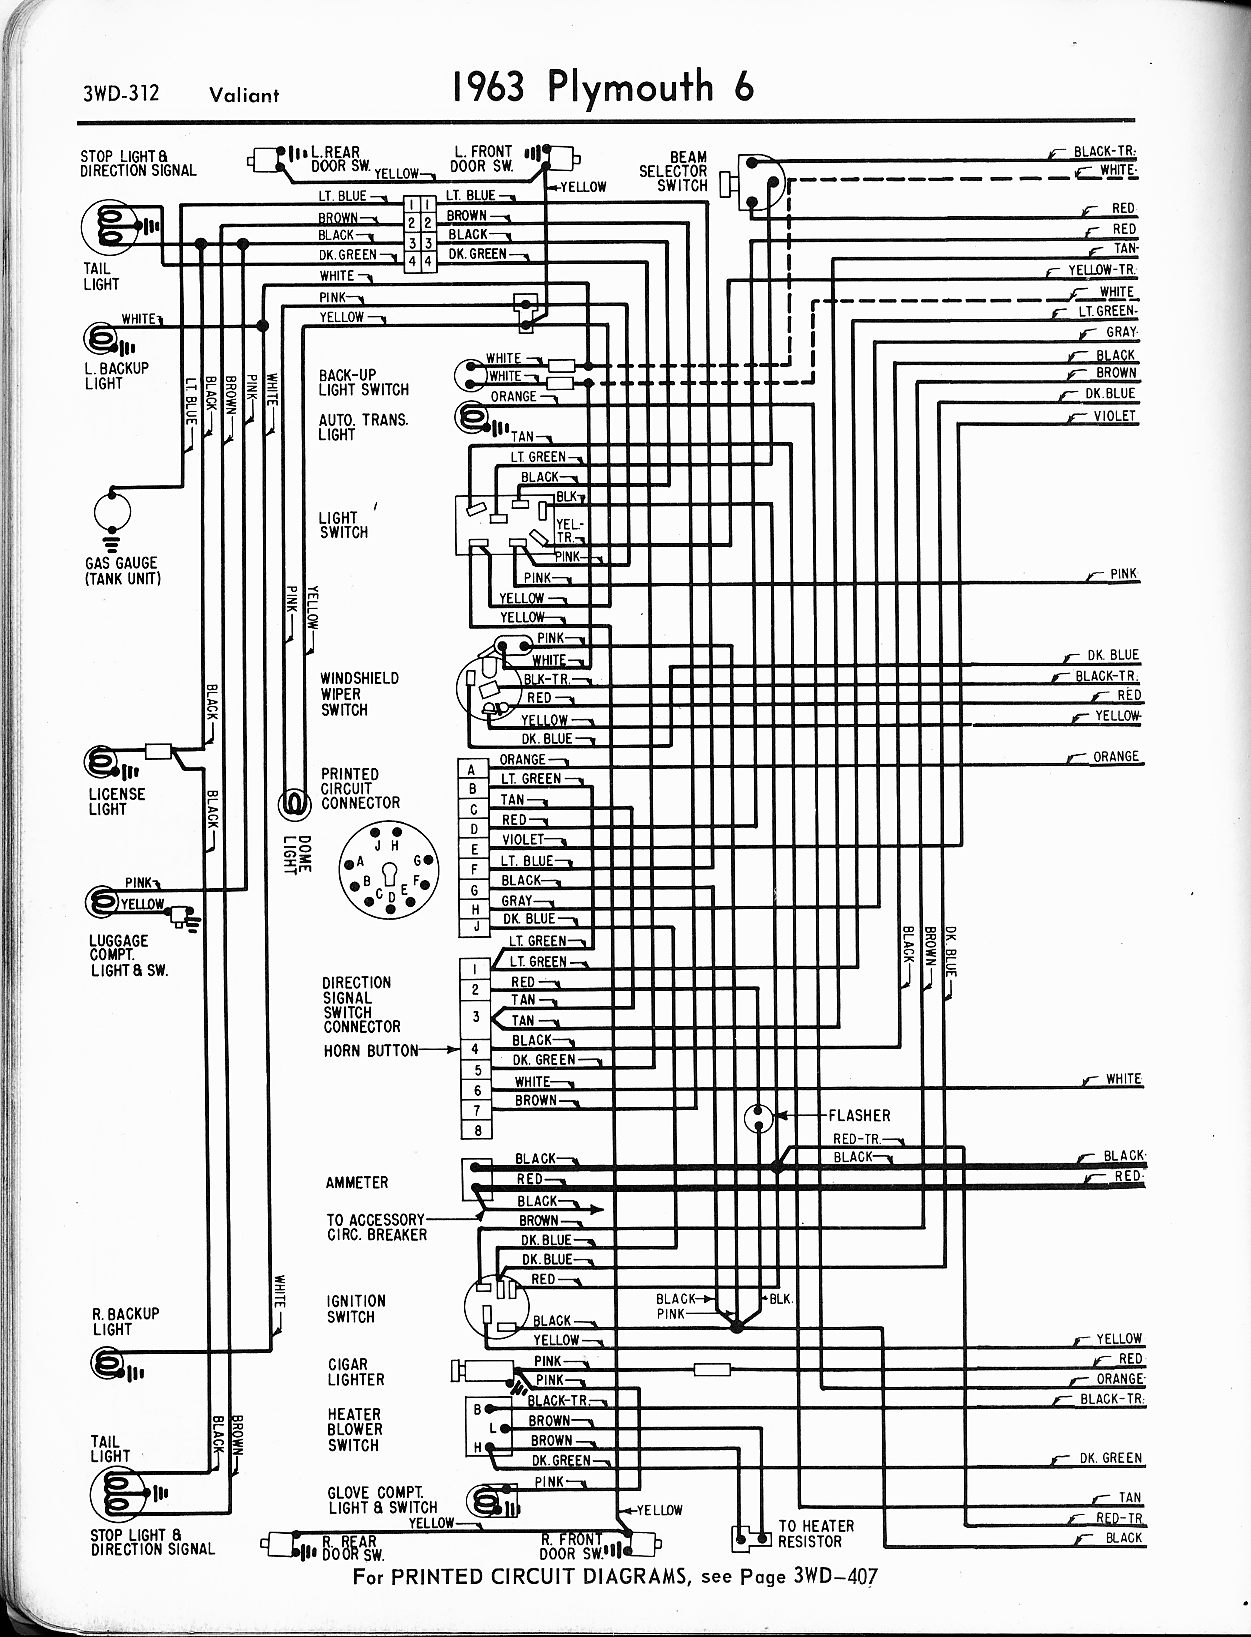 1956 1965 plymouth wiring the old car manual project rh oldcarmanualproject com Pontiac Bonneville Wiring-Diagram 1964 Pontiac Bonneville Wiring-Diagram